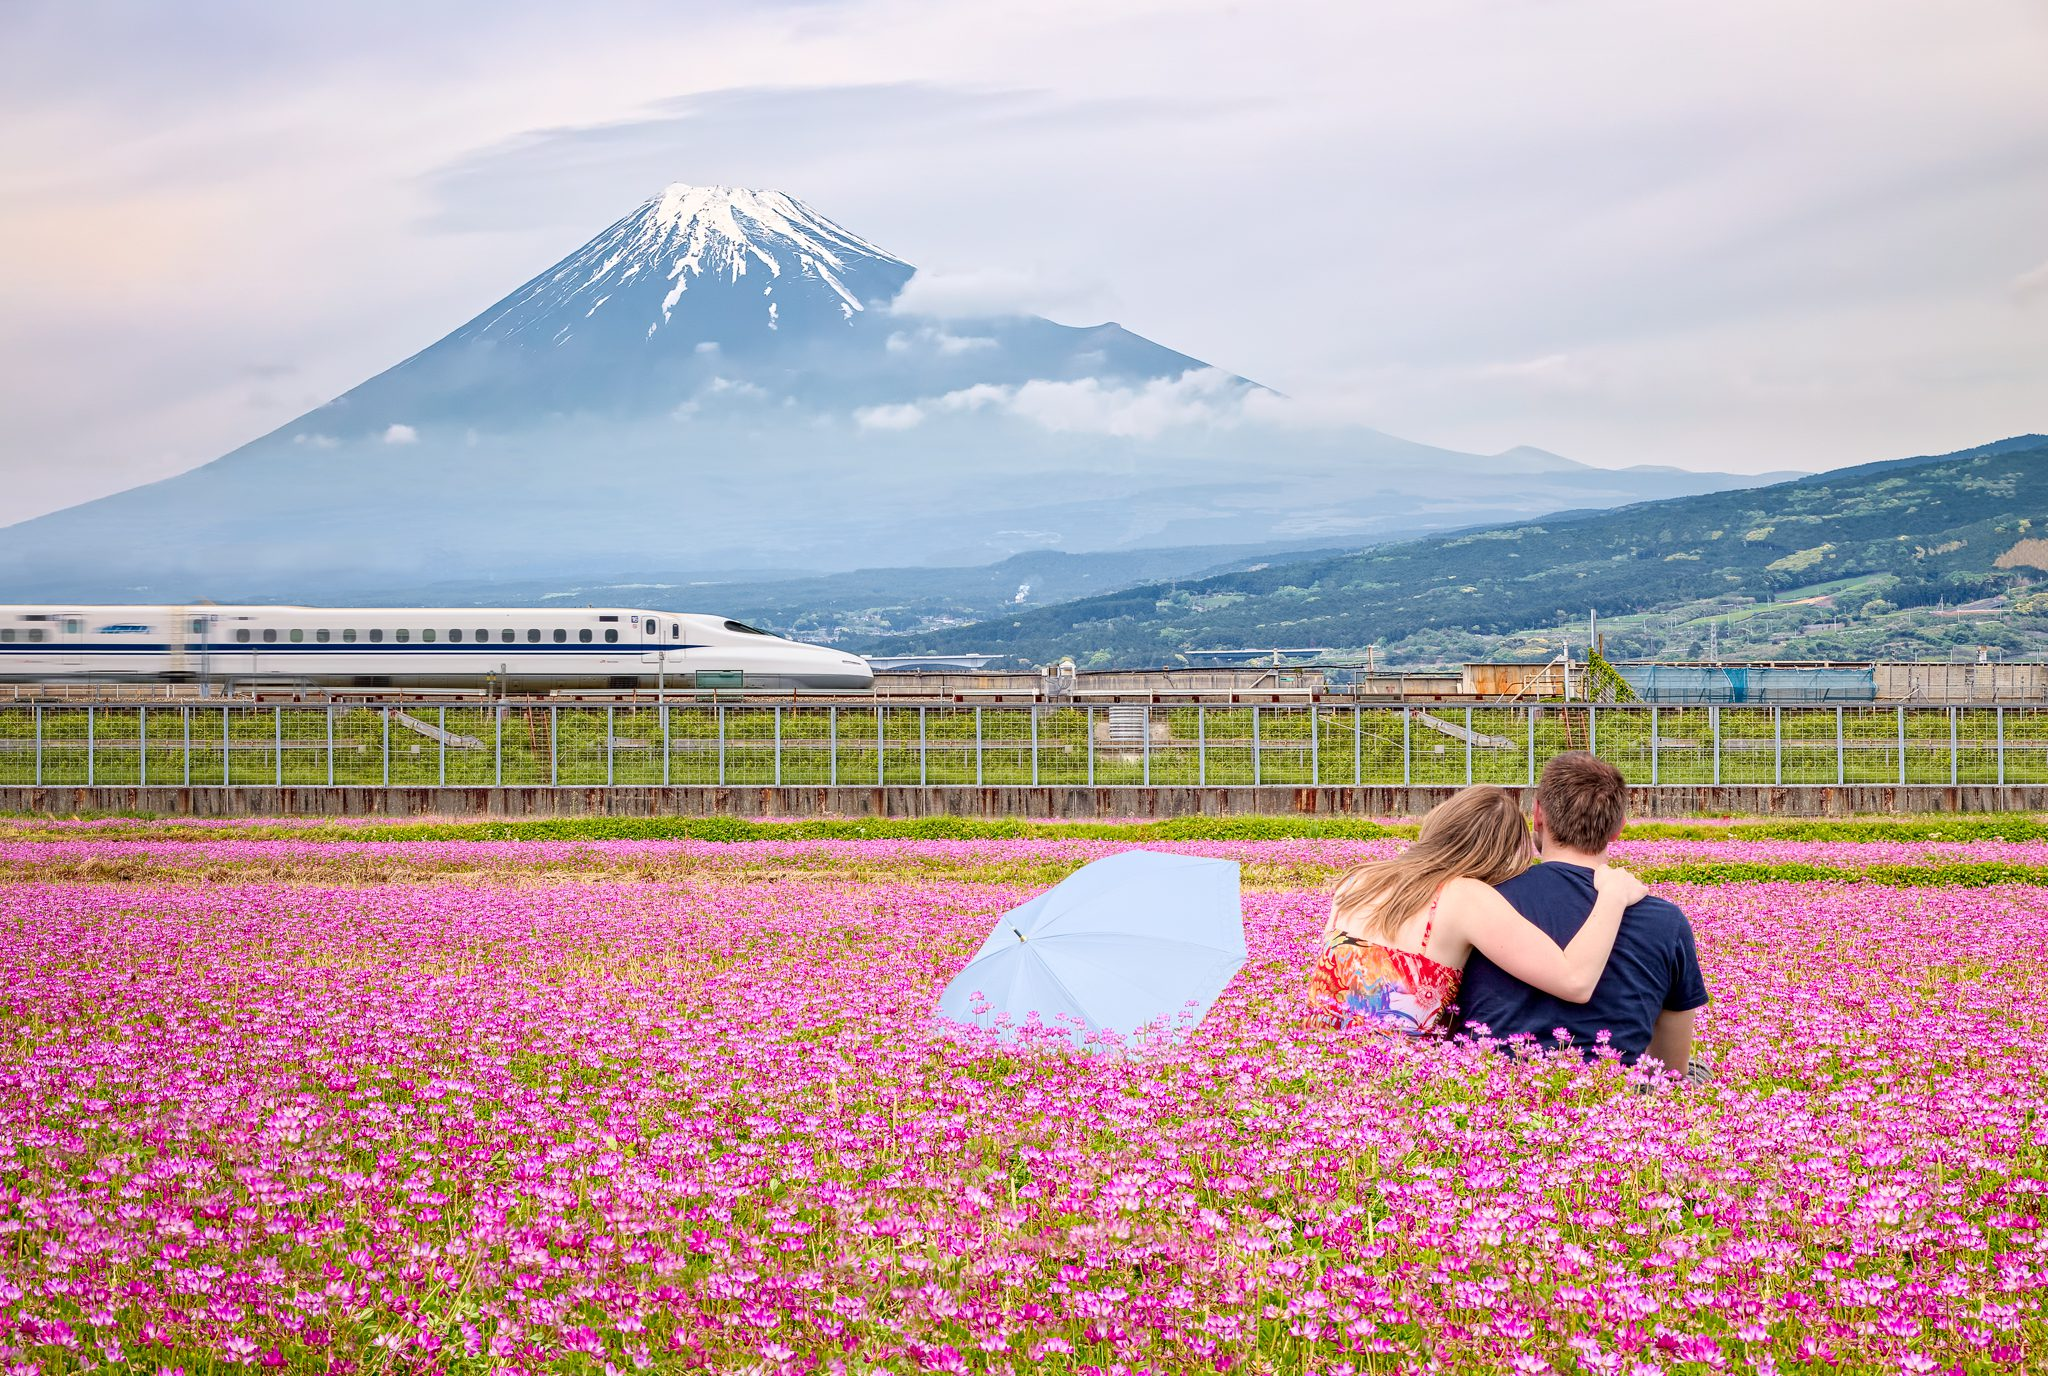 A perfect abstract of Japan. Shinkansen, beautiful flower fields and Fuji-san, the icon of Japan looking over it all.